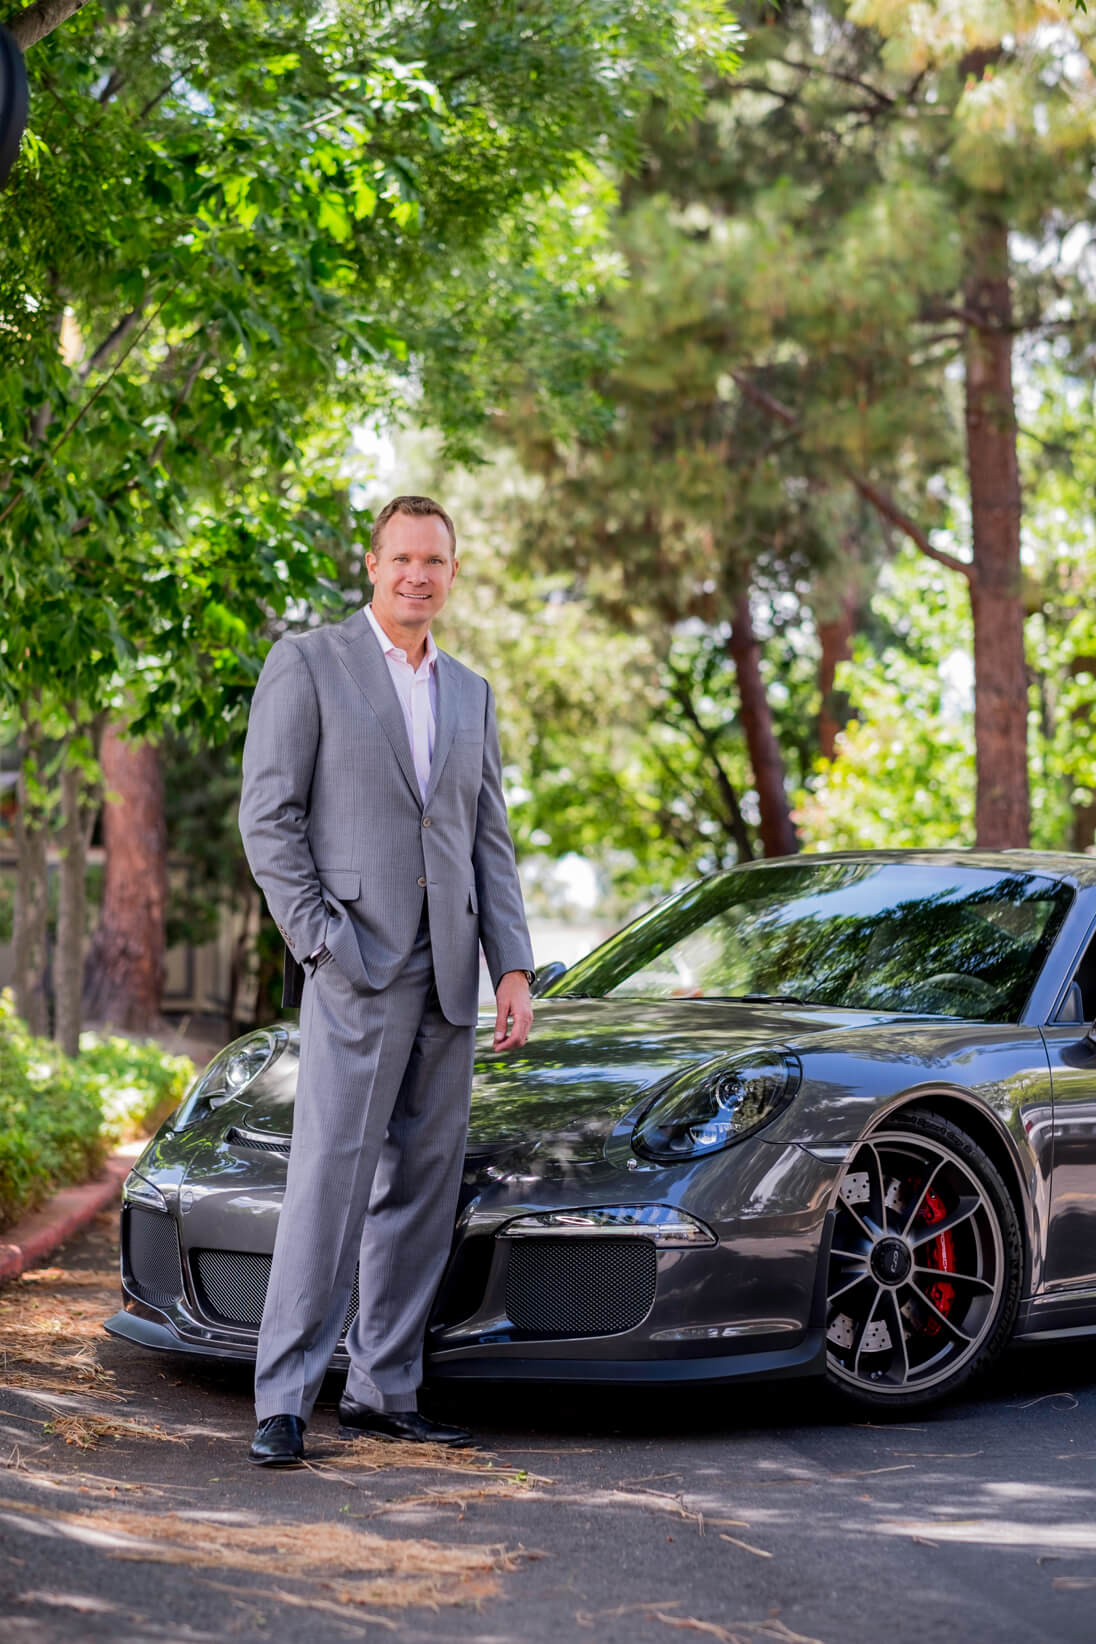 Headshot man in suit standing in front of fancy sports car.